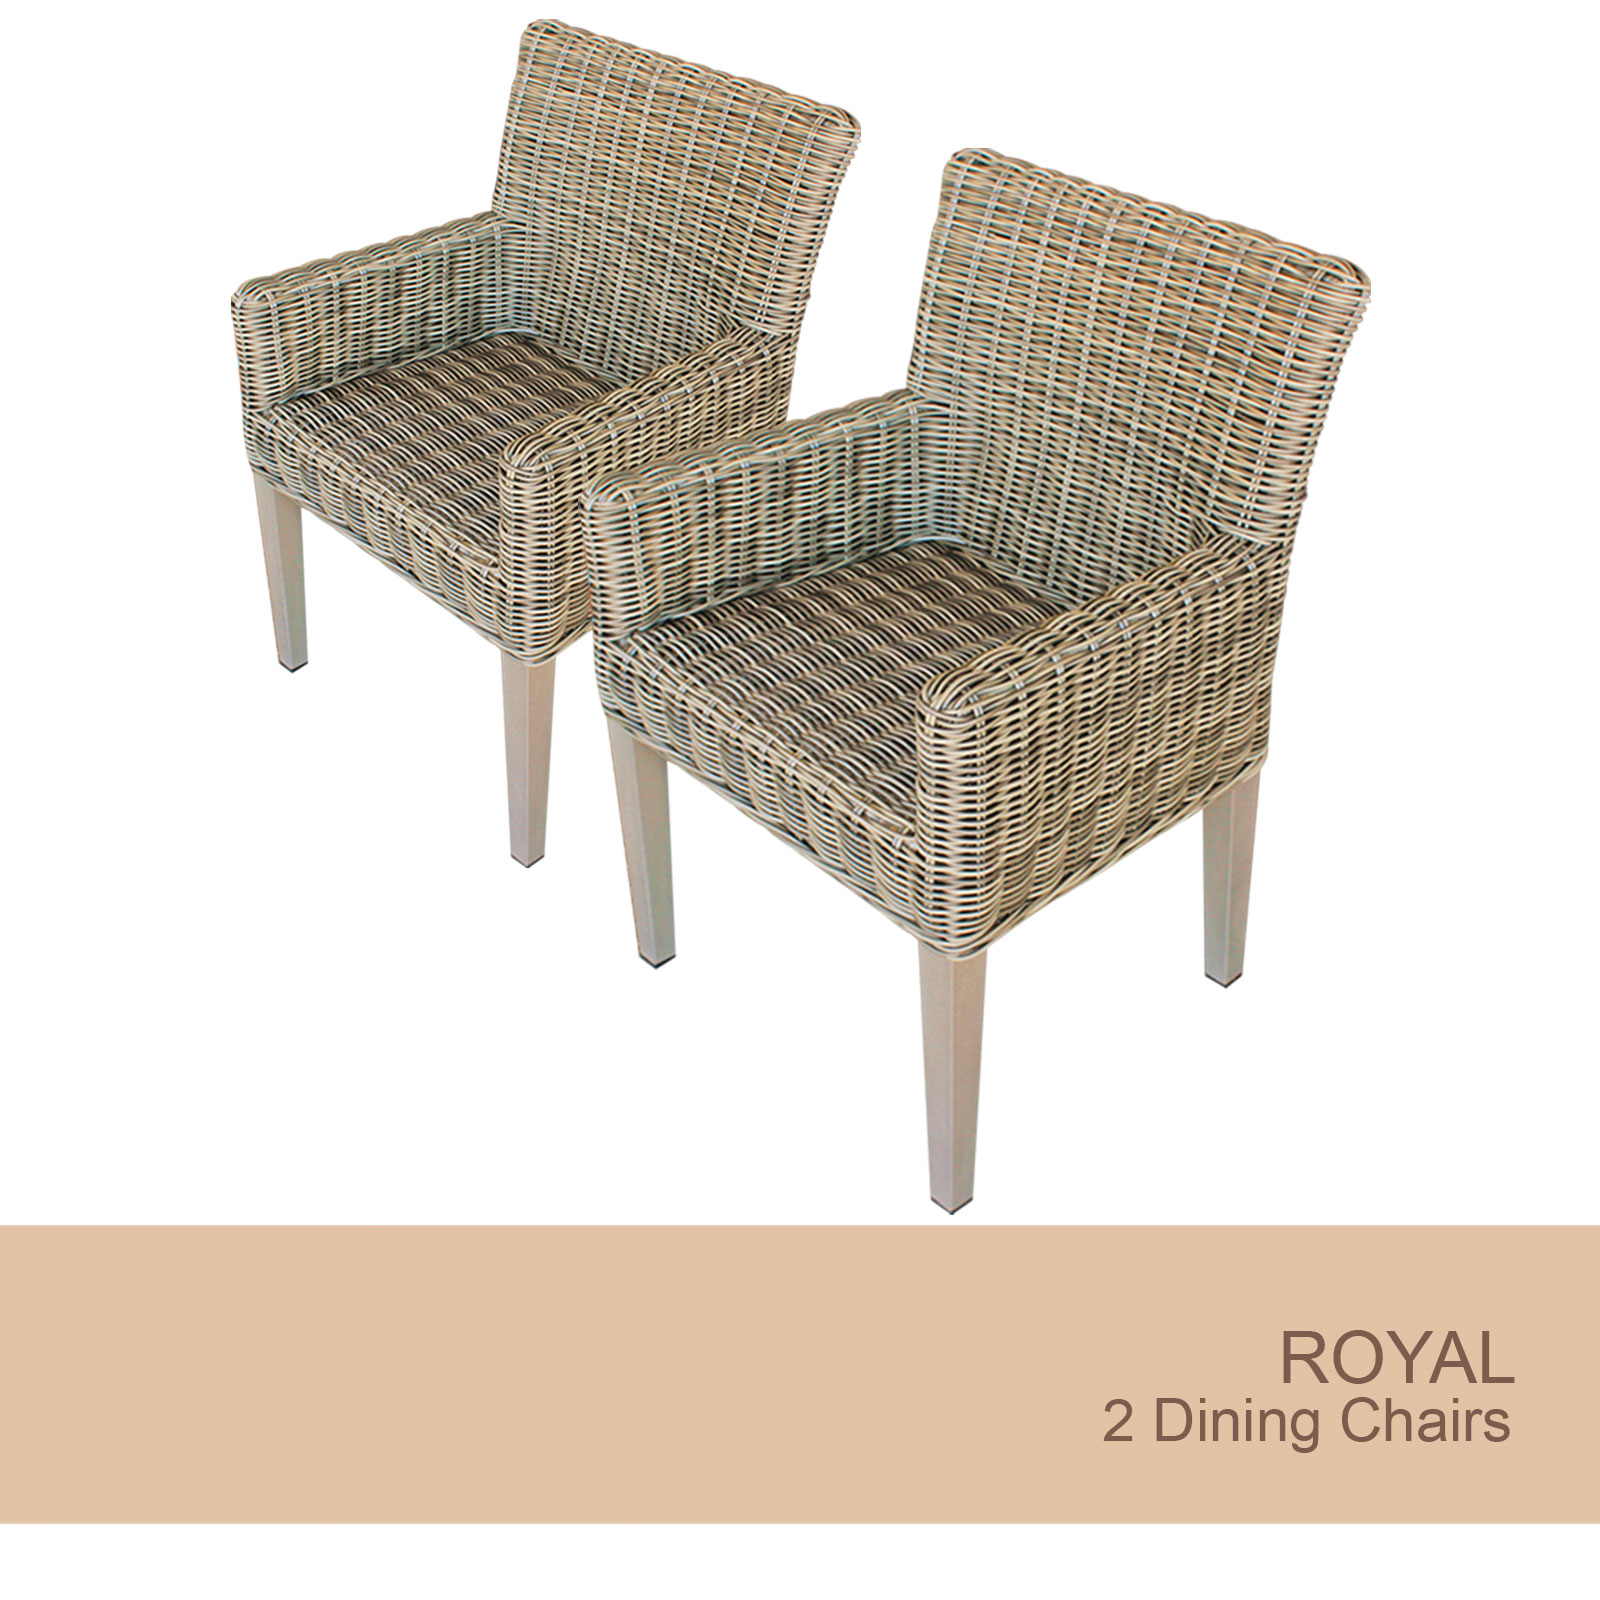 2 Royal Dining Chairs With Arms